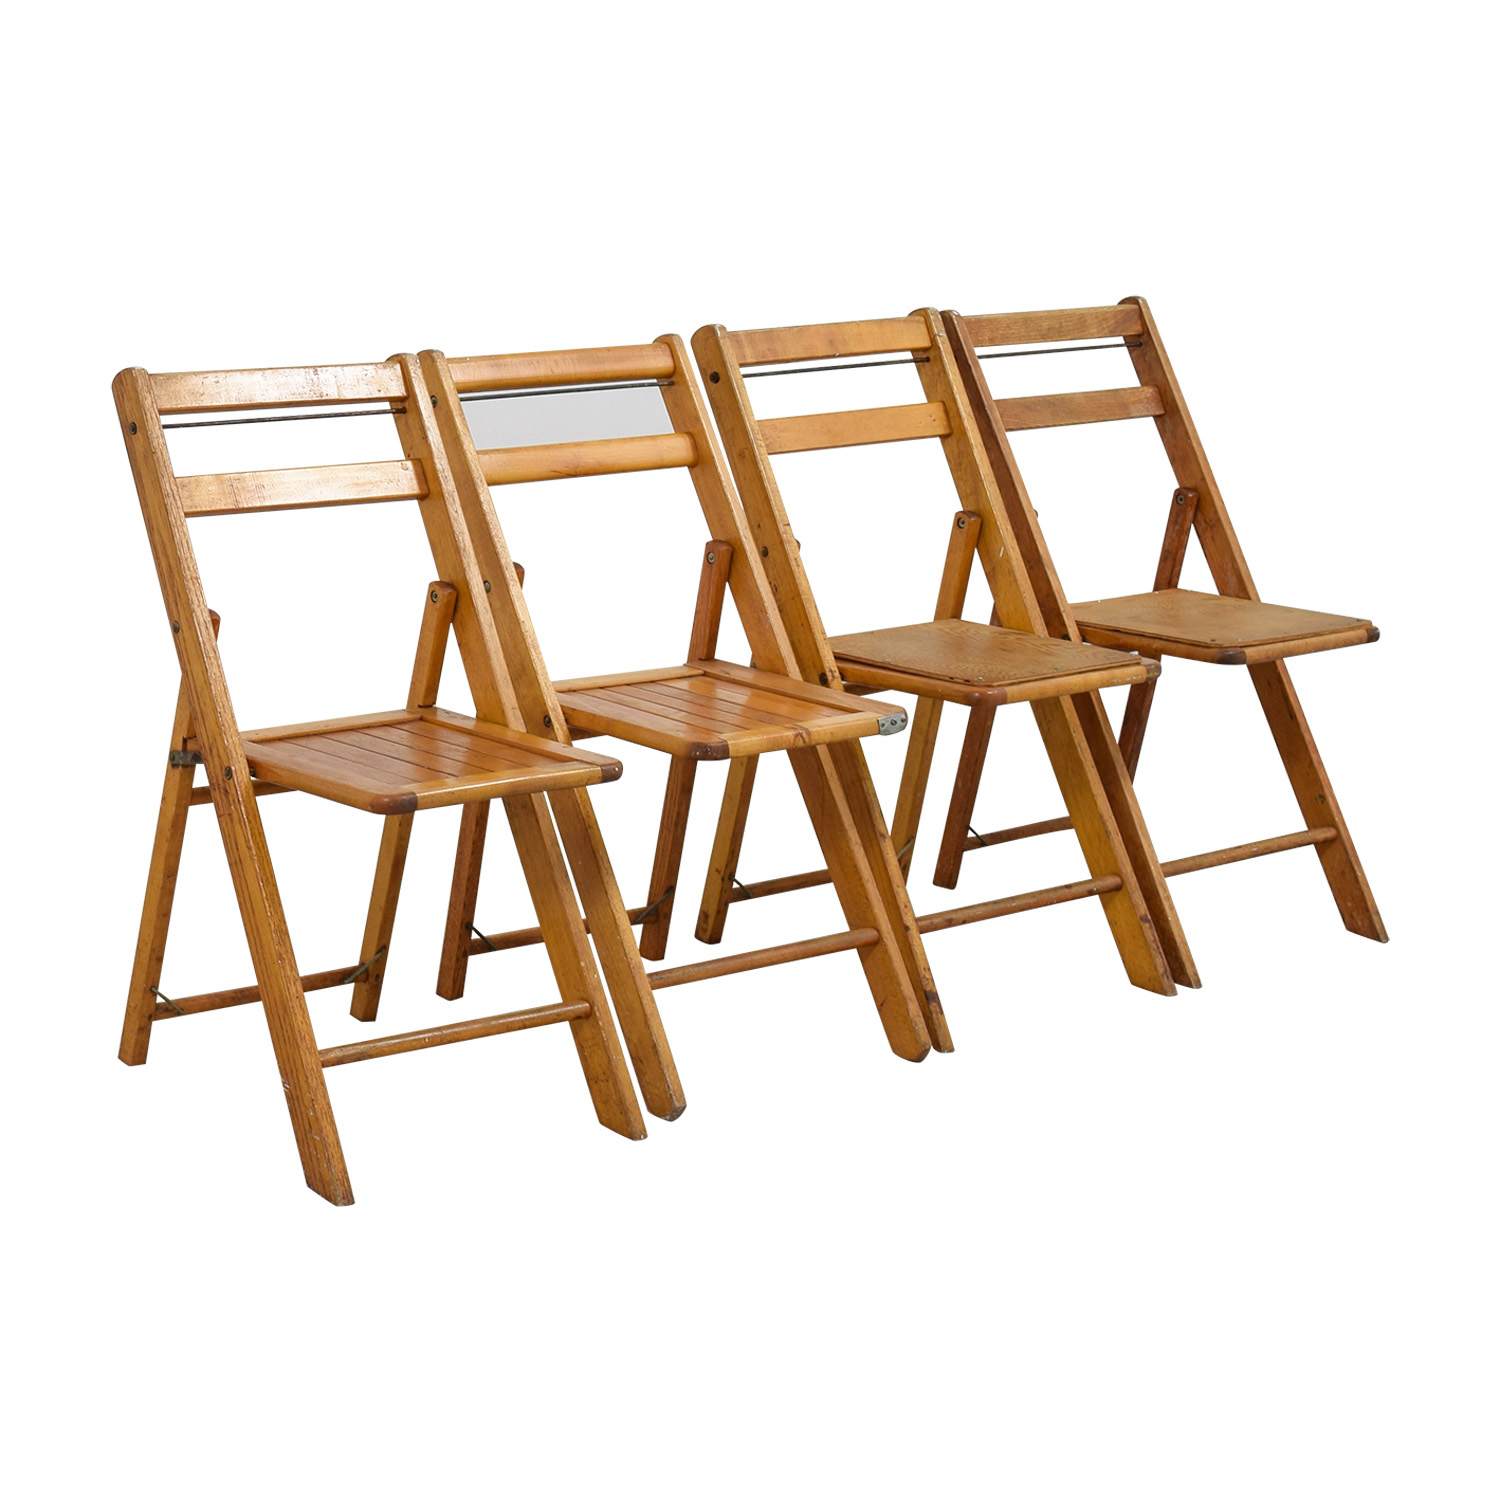 Rustic Wood Chairs 68 Off Rustic Wood Folding Chairs Chairs